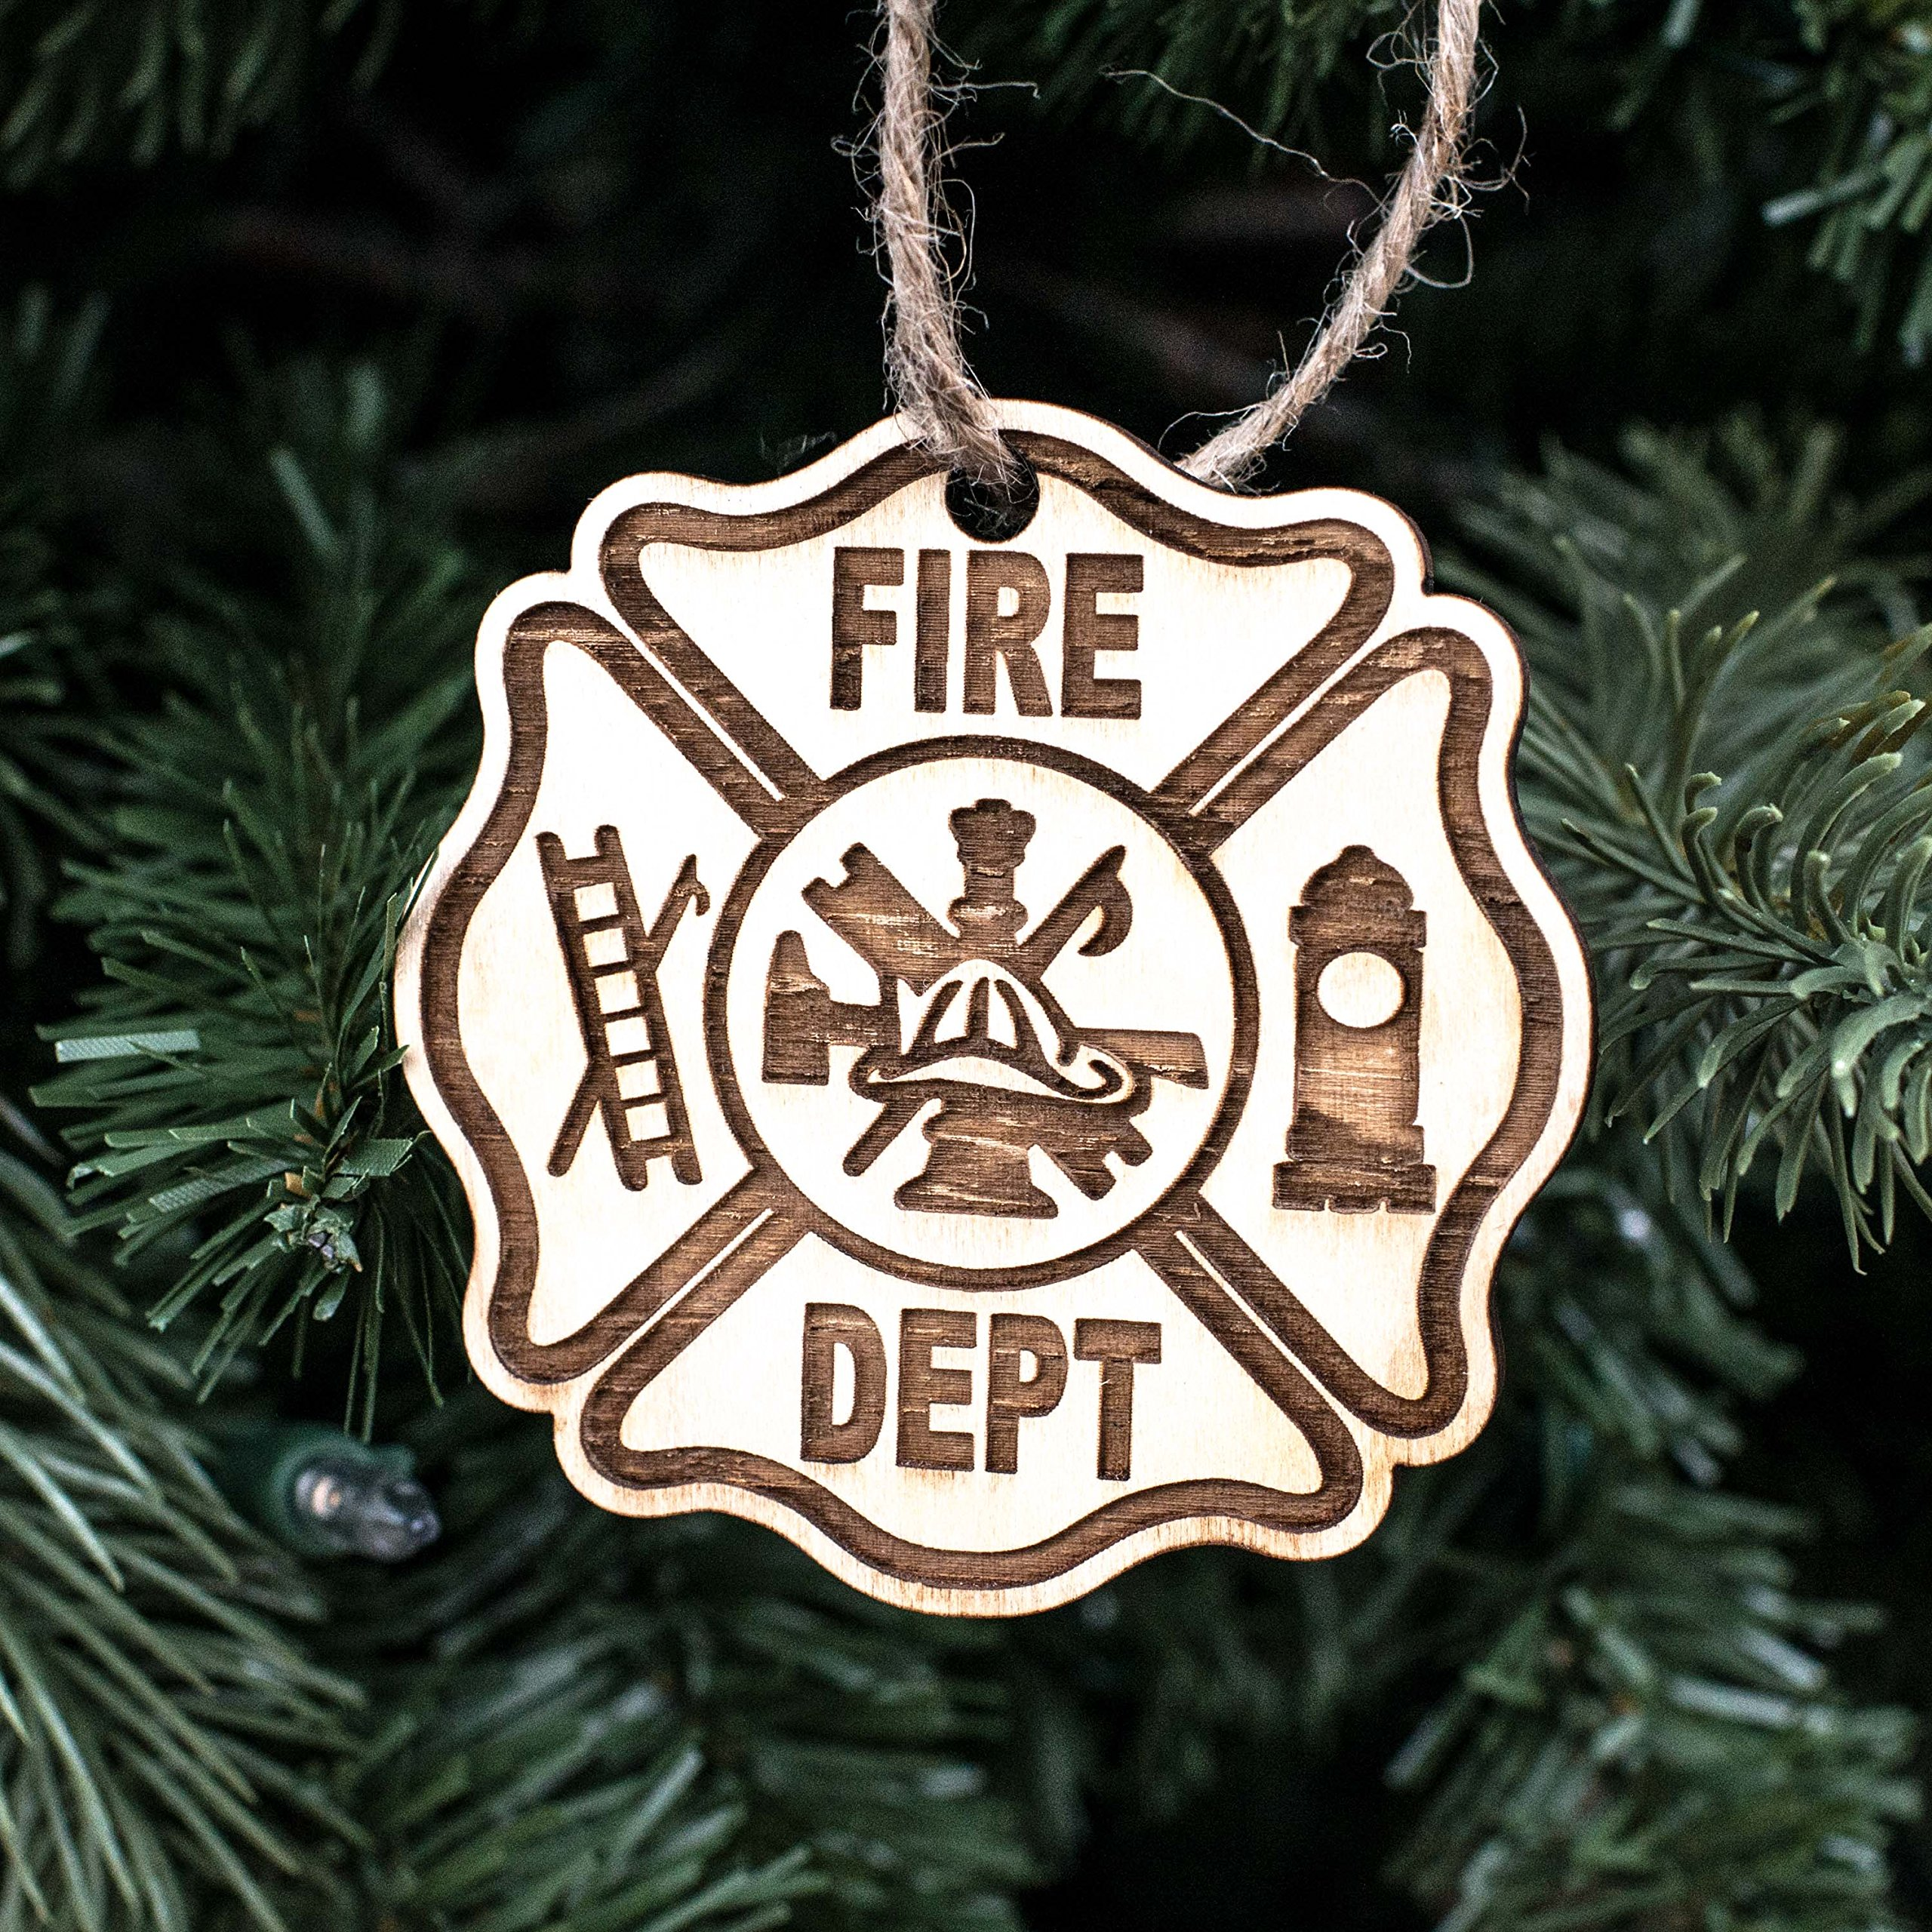 Ornament - Firefighter - Raw Wood 3x3in by Hip Flask Plus (Image #1)